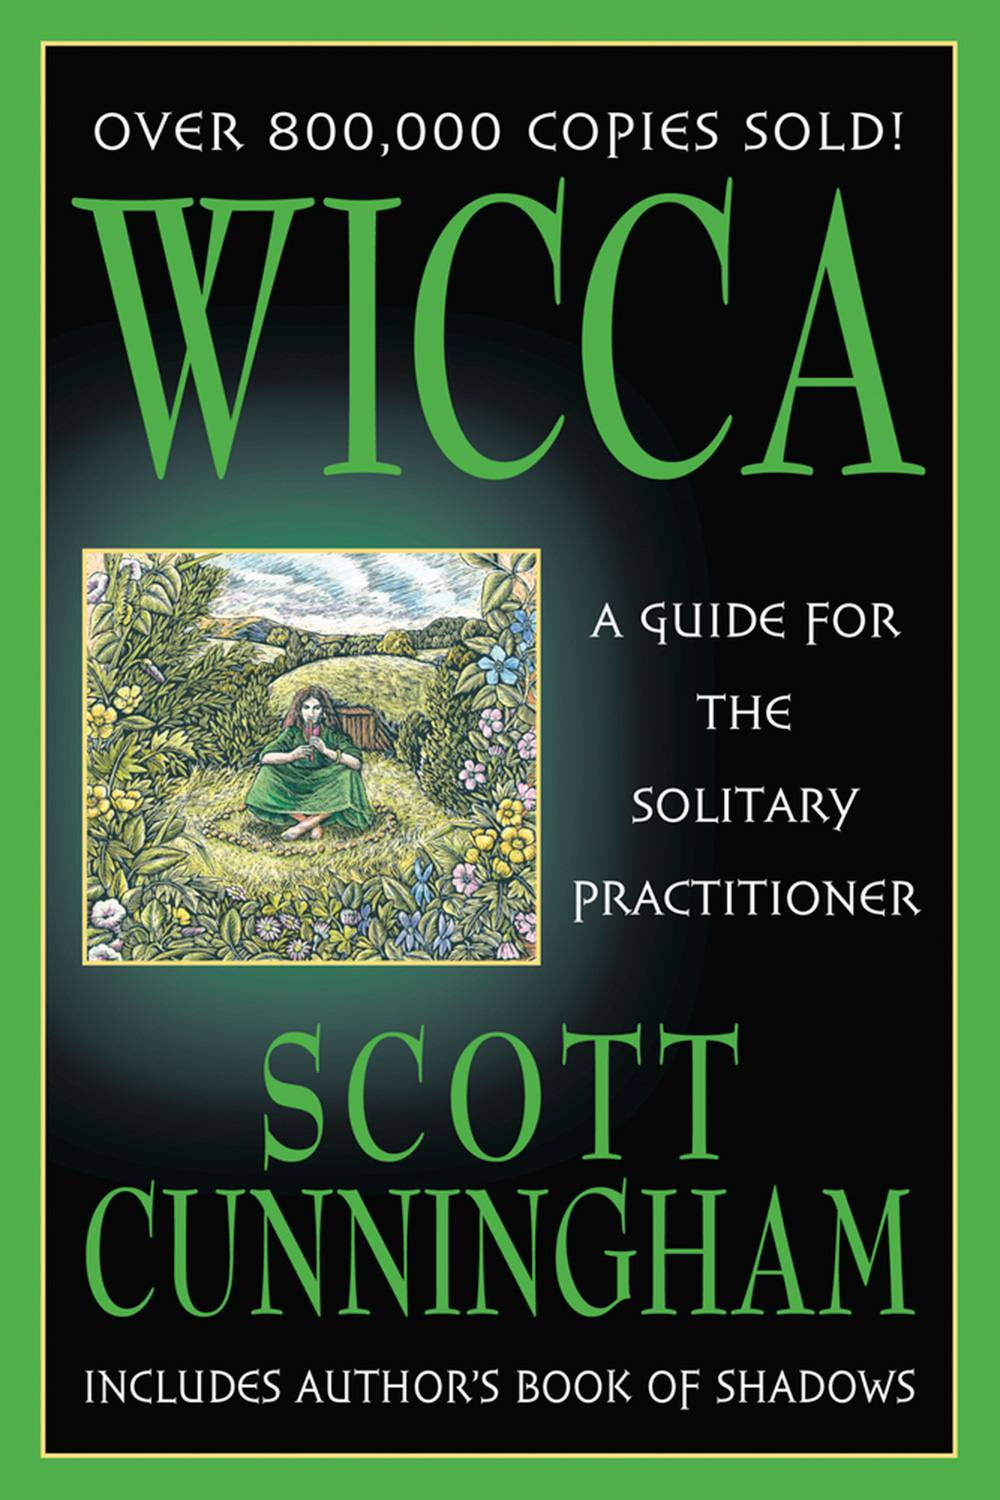 A Guide for the Solitary Practitioner